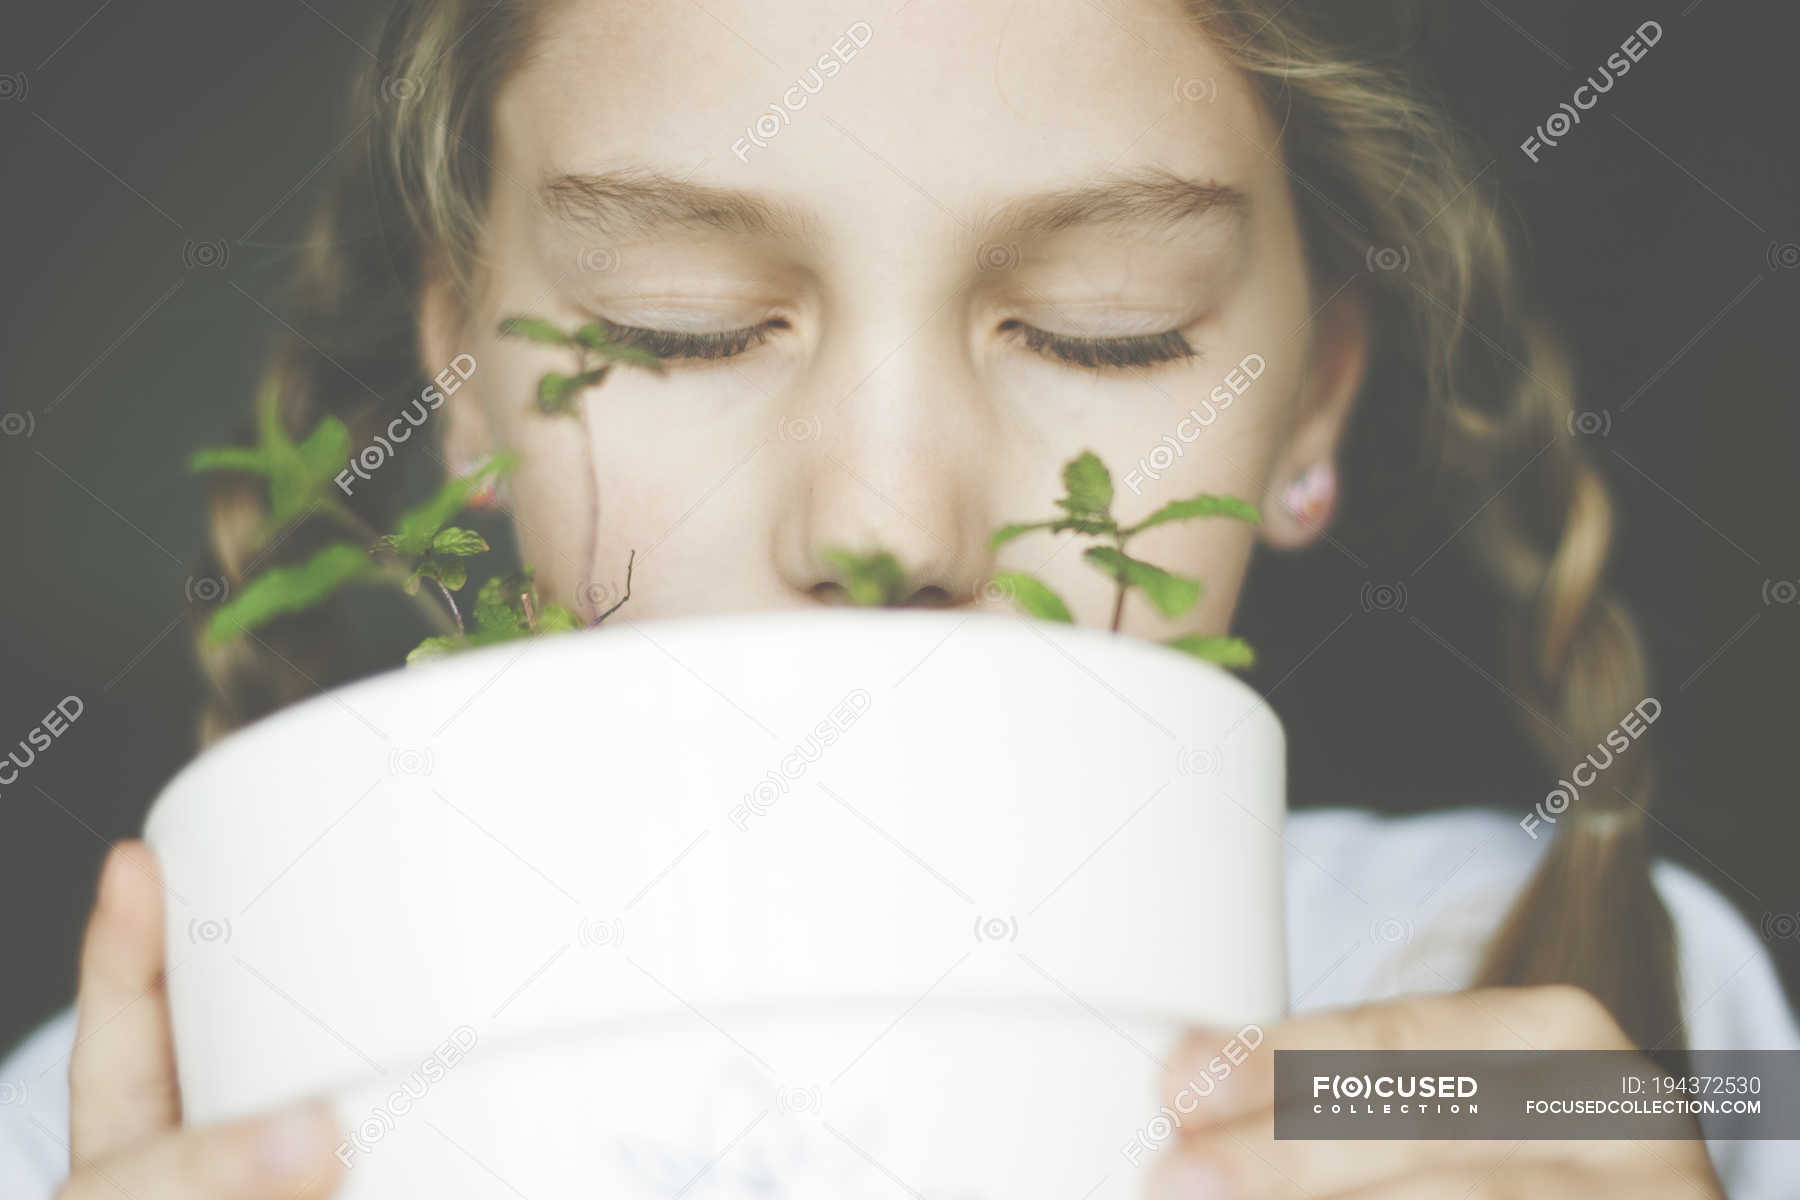 Girl smelling mint plant in a plant pot — front view, elementary age